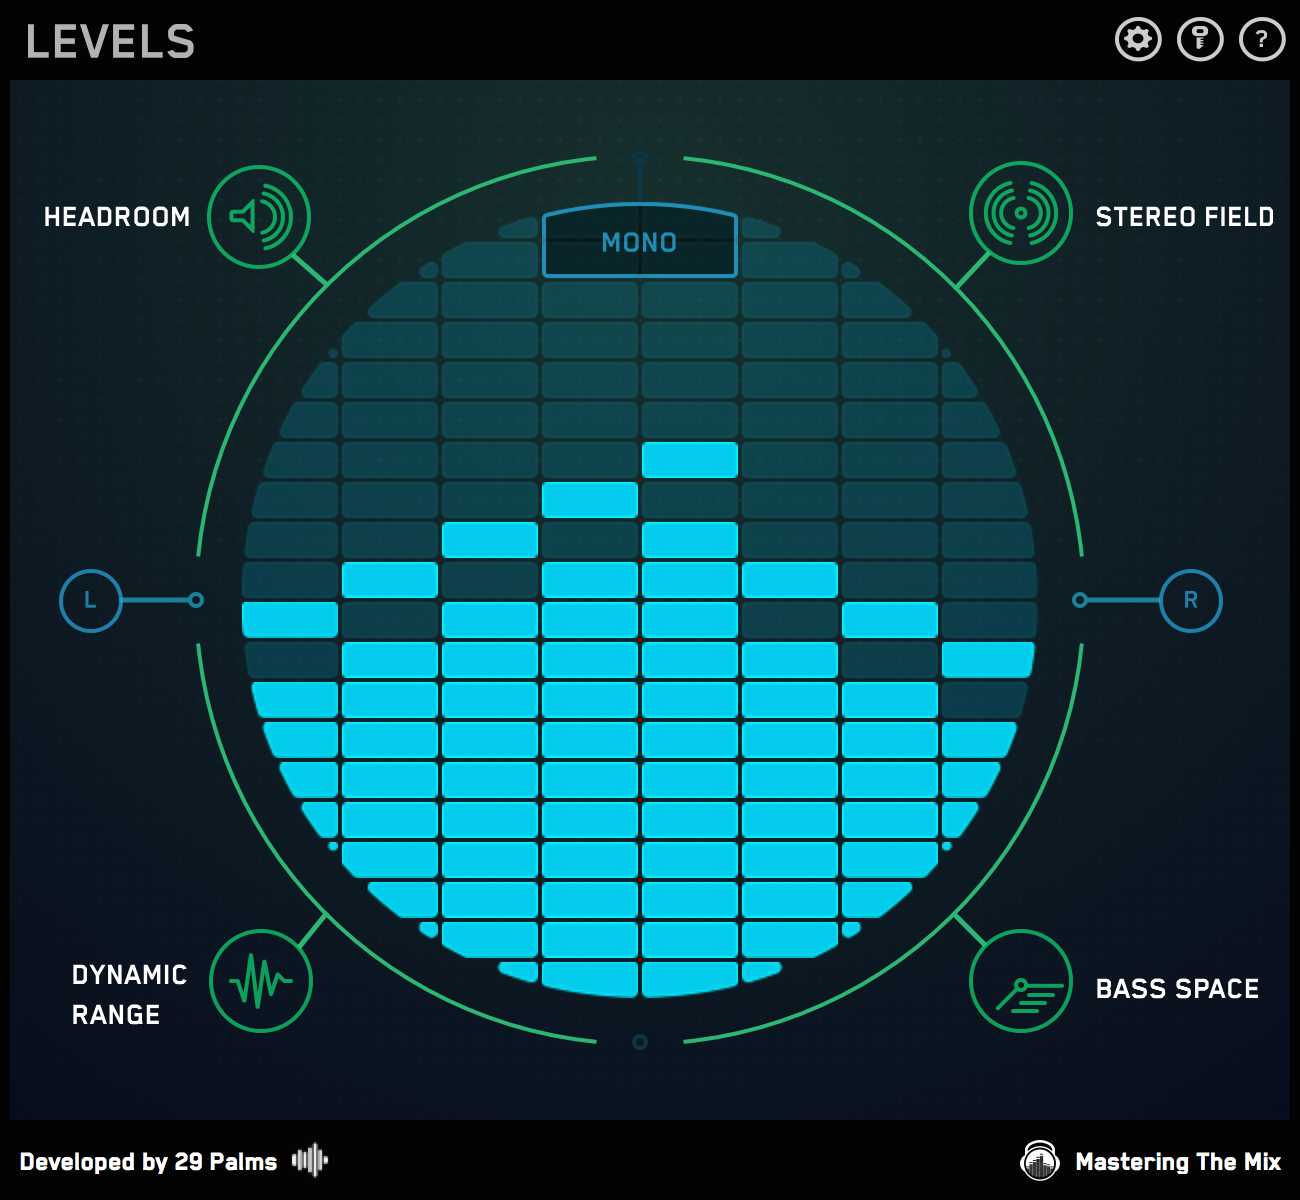 KVR: Levels by Mastering The Mix - Mixing Tool VST Plugin